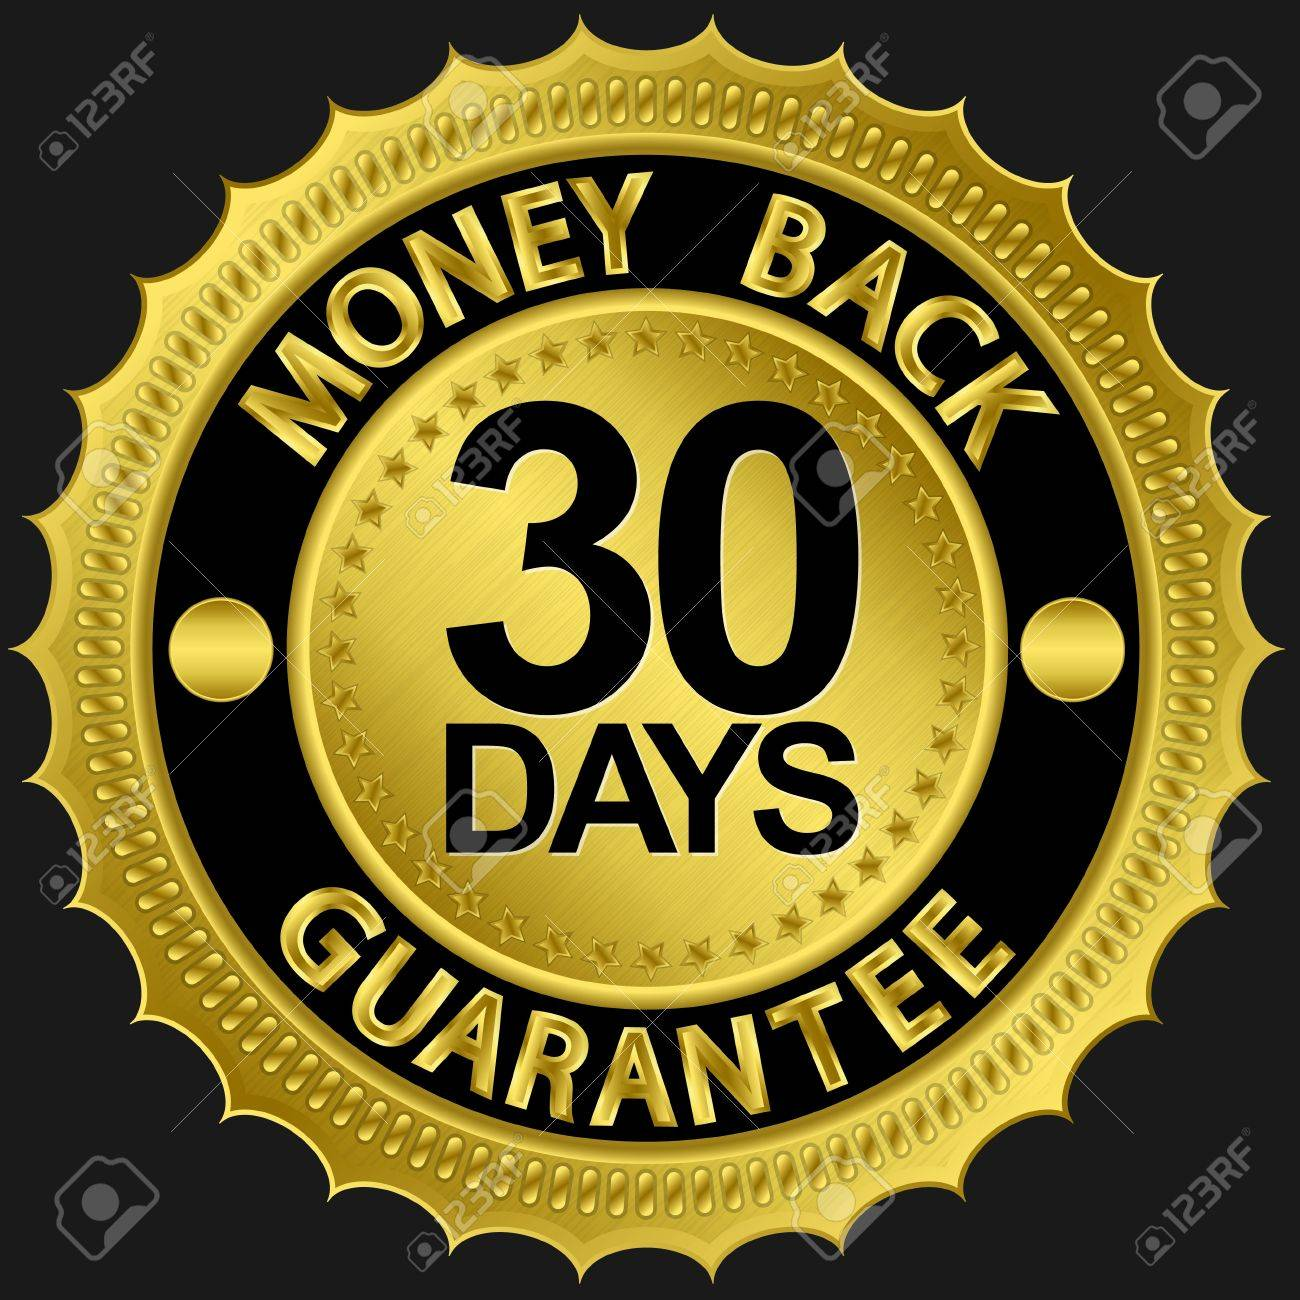 30 days money back guarantee golden sign illustration Stock Vector - 15066394